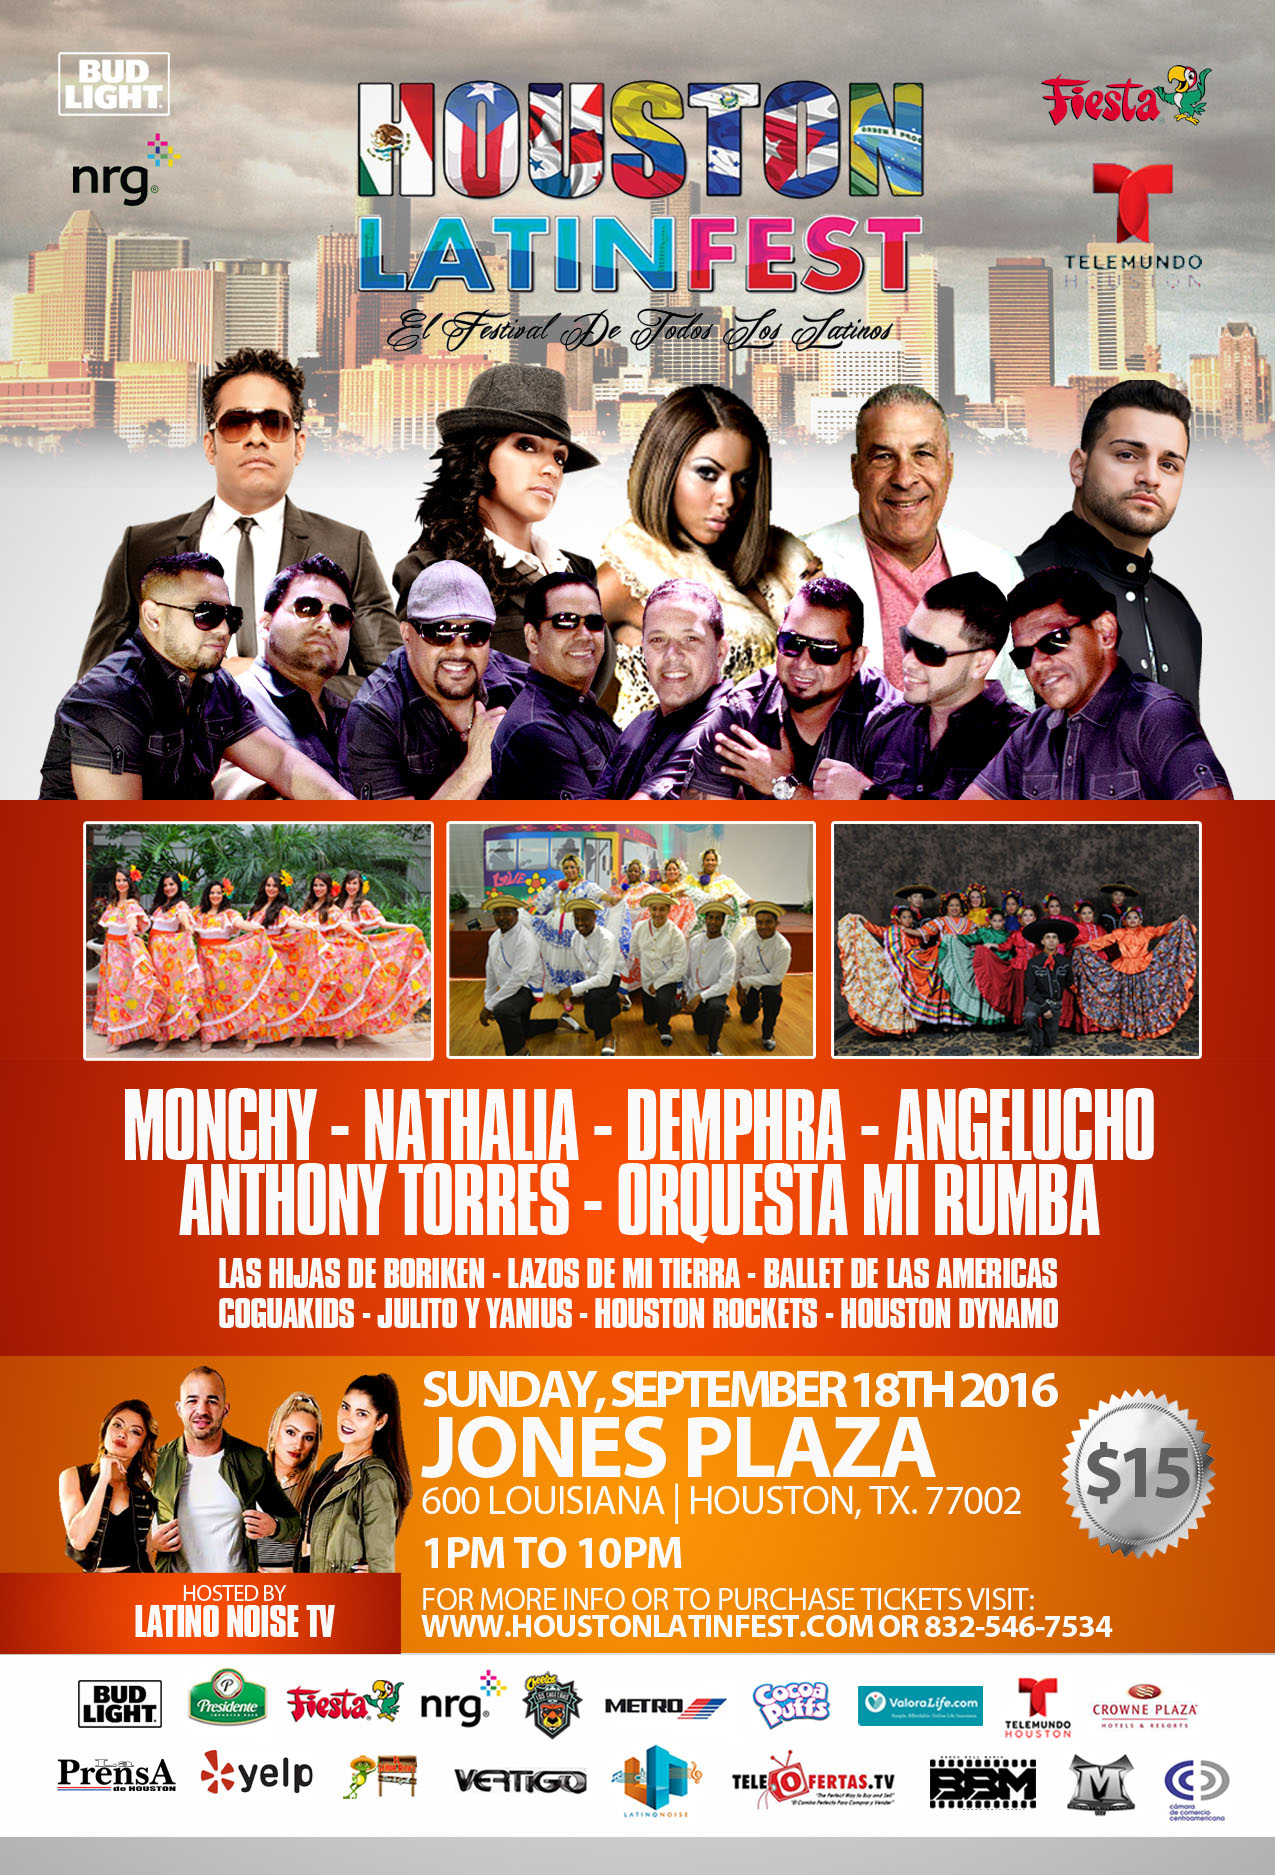 Houston Latin Fest on Sunday, September 18, 2016 (hispanichouston.com)